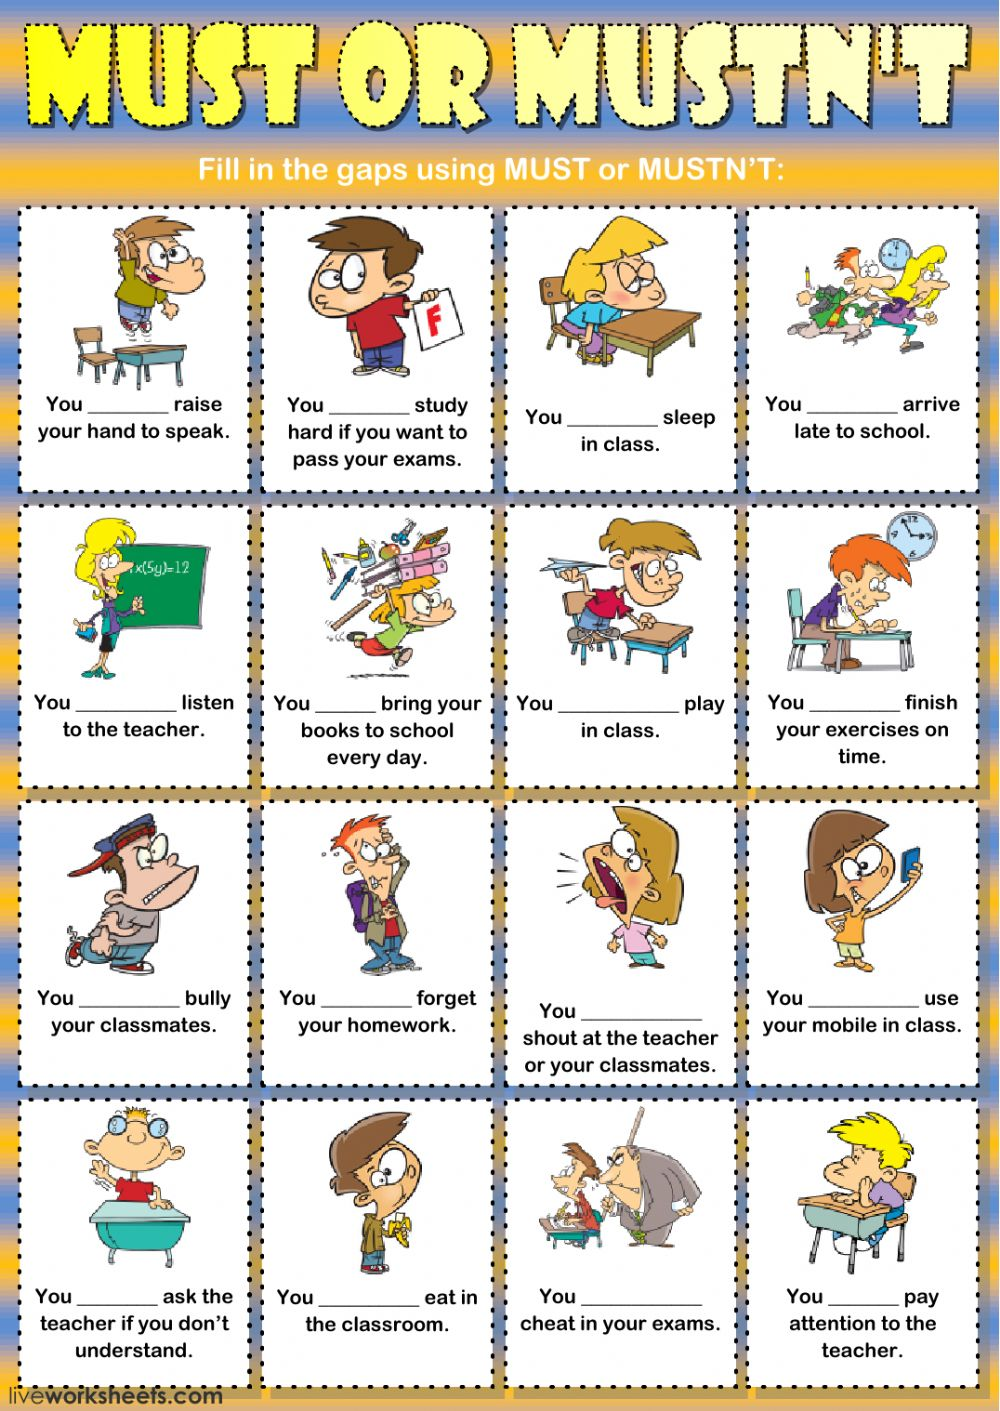 Worksheets Classroom Rules Worksheet must or mustnt classroom rules interactive worksheet must